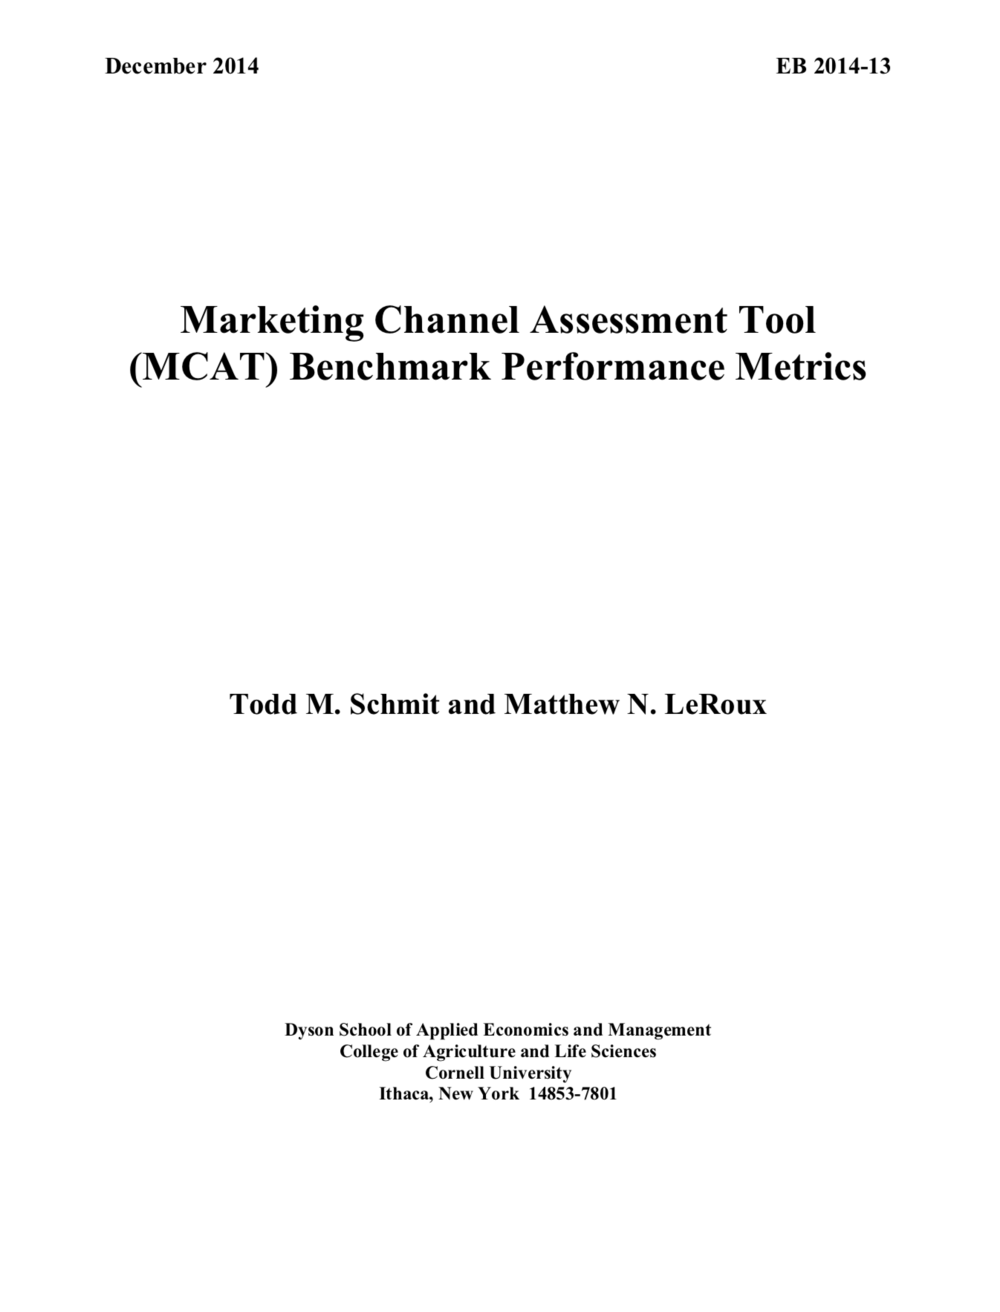 Marketing Channel Assessment Tool (MCAT) Benchmark Performance Metrics.  Click to view PD F.